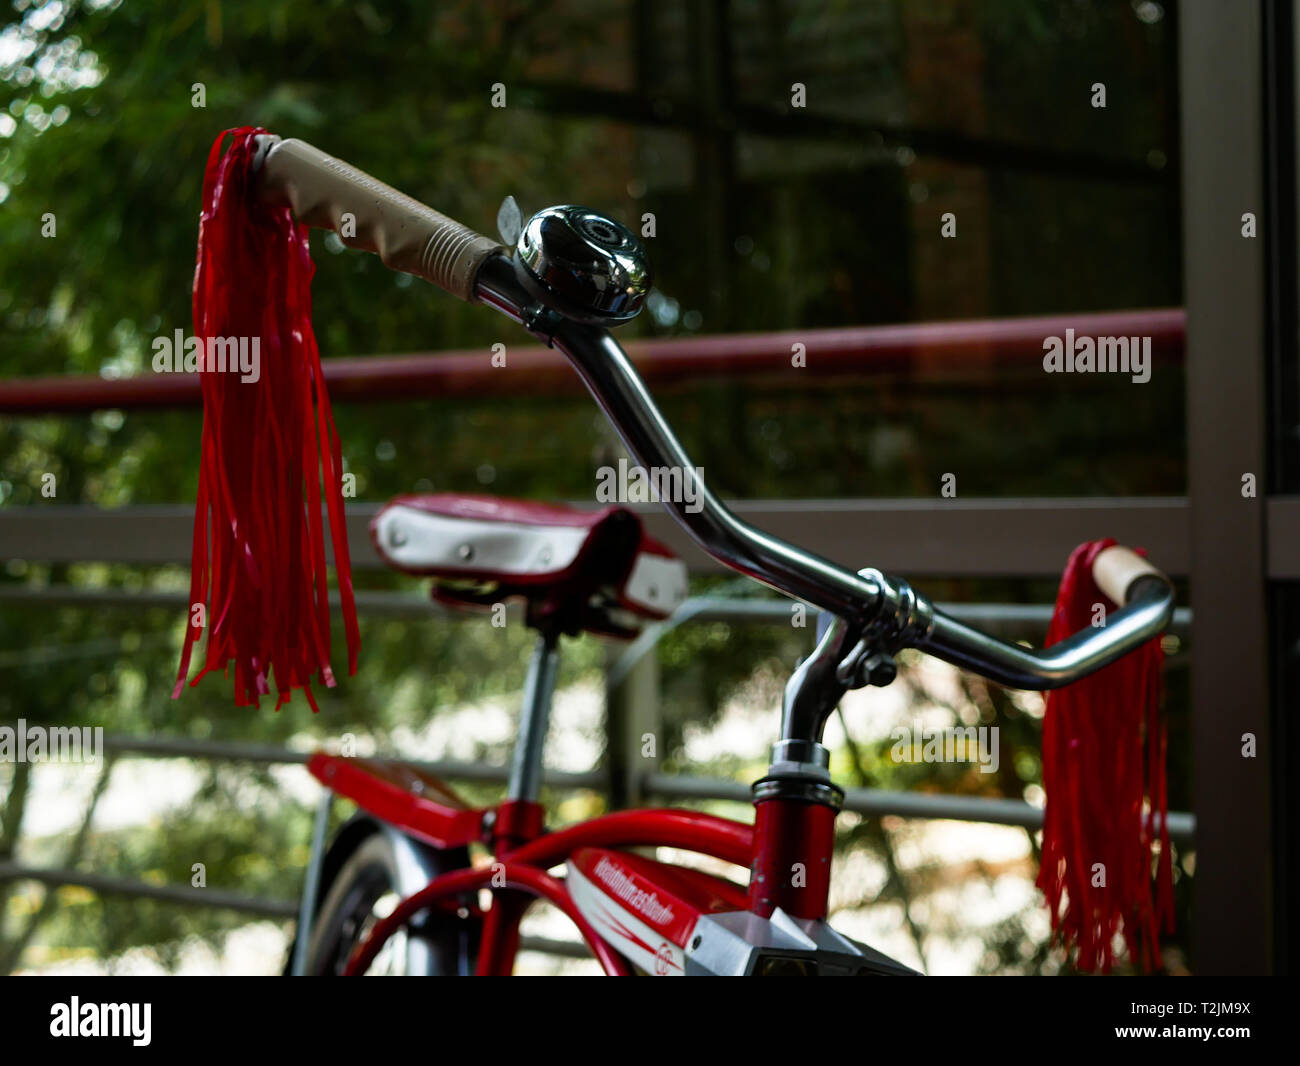 and old red bike on display during an expo on museo el castillo medellin colombia - Stock Image